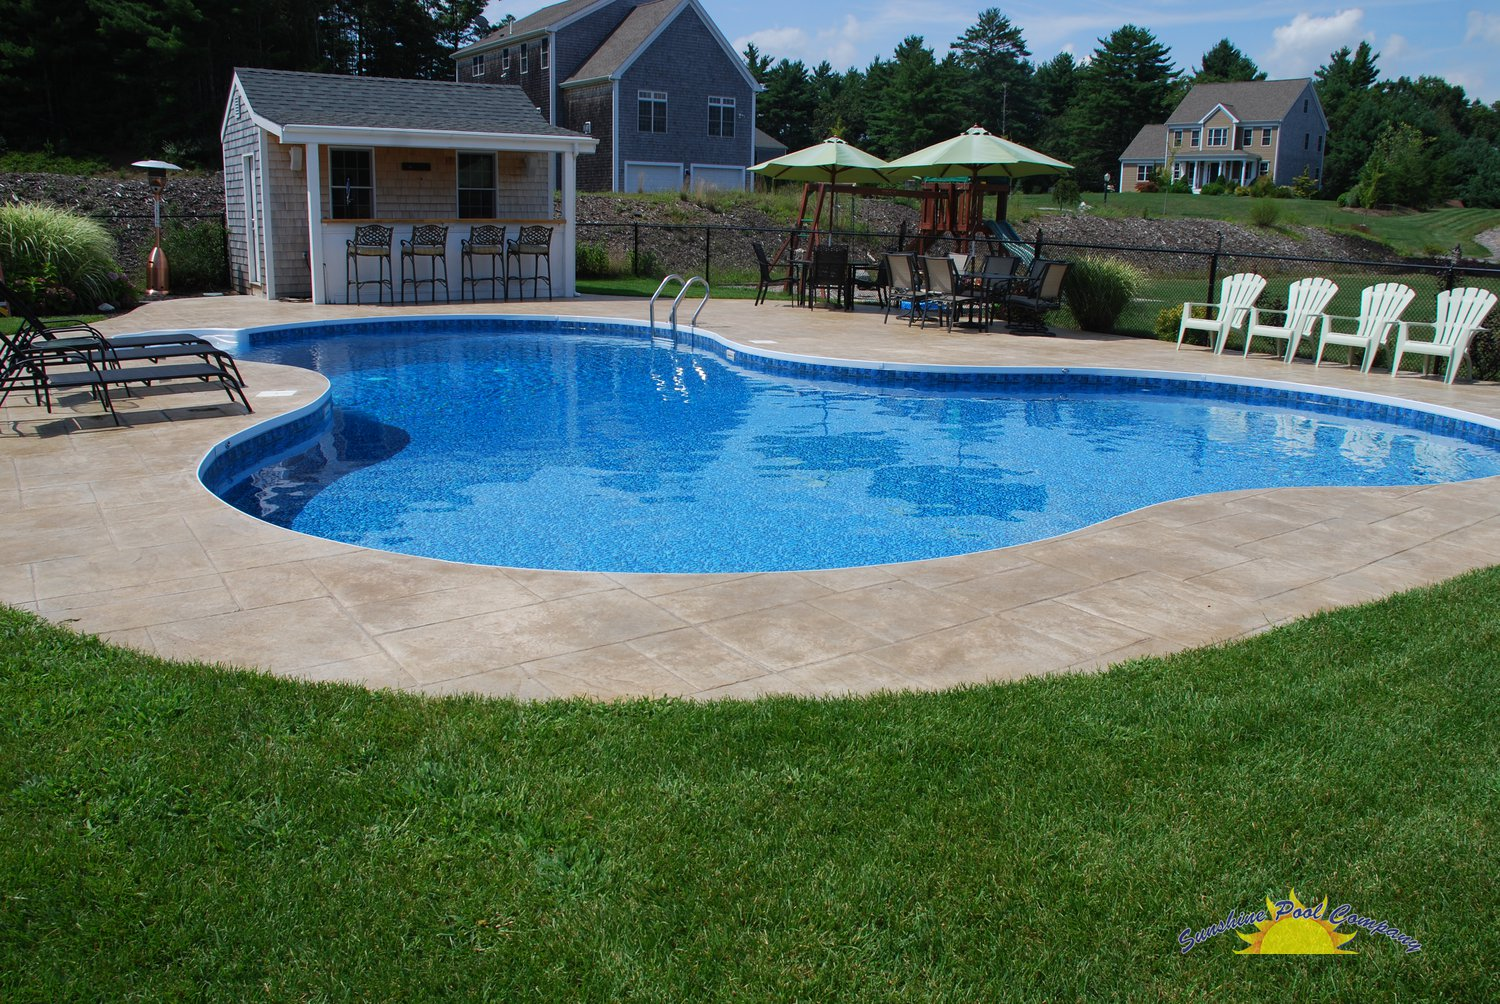 27 simple pictures of inground pools inspiration images for Underground swimming pool designs